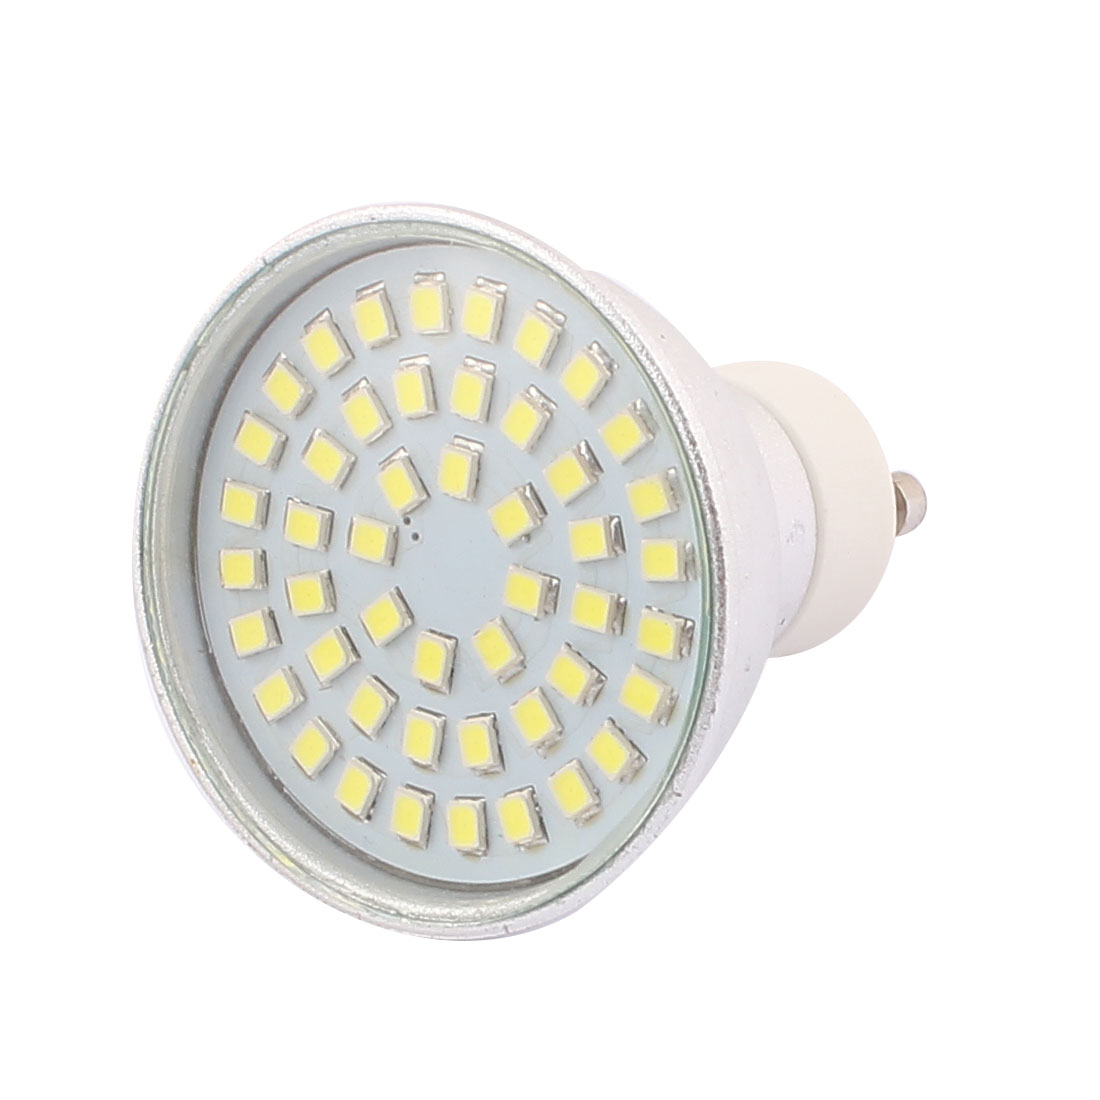 GU10 SMD 2835 48 LEDs 4W Aluminum Energy-Saving LED Lamp Bulb White AC 220V-240V